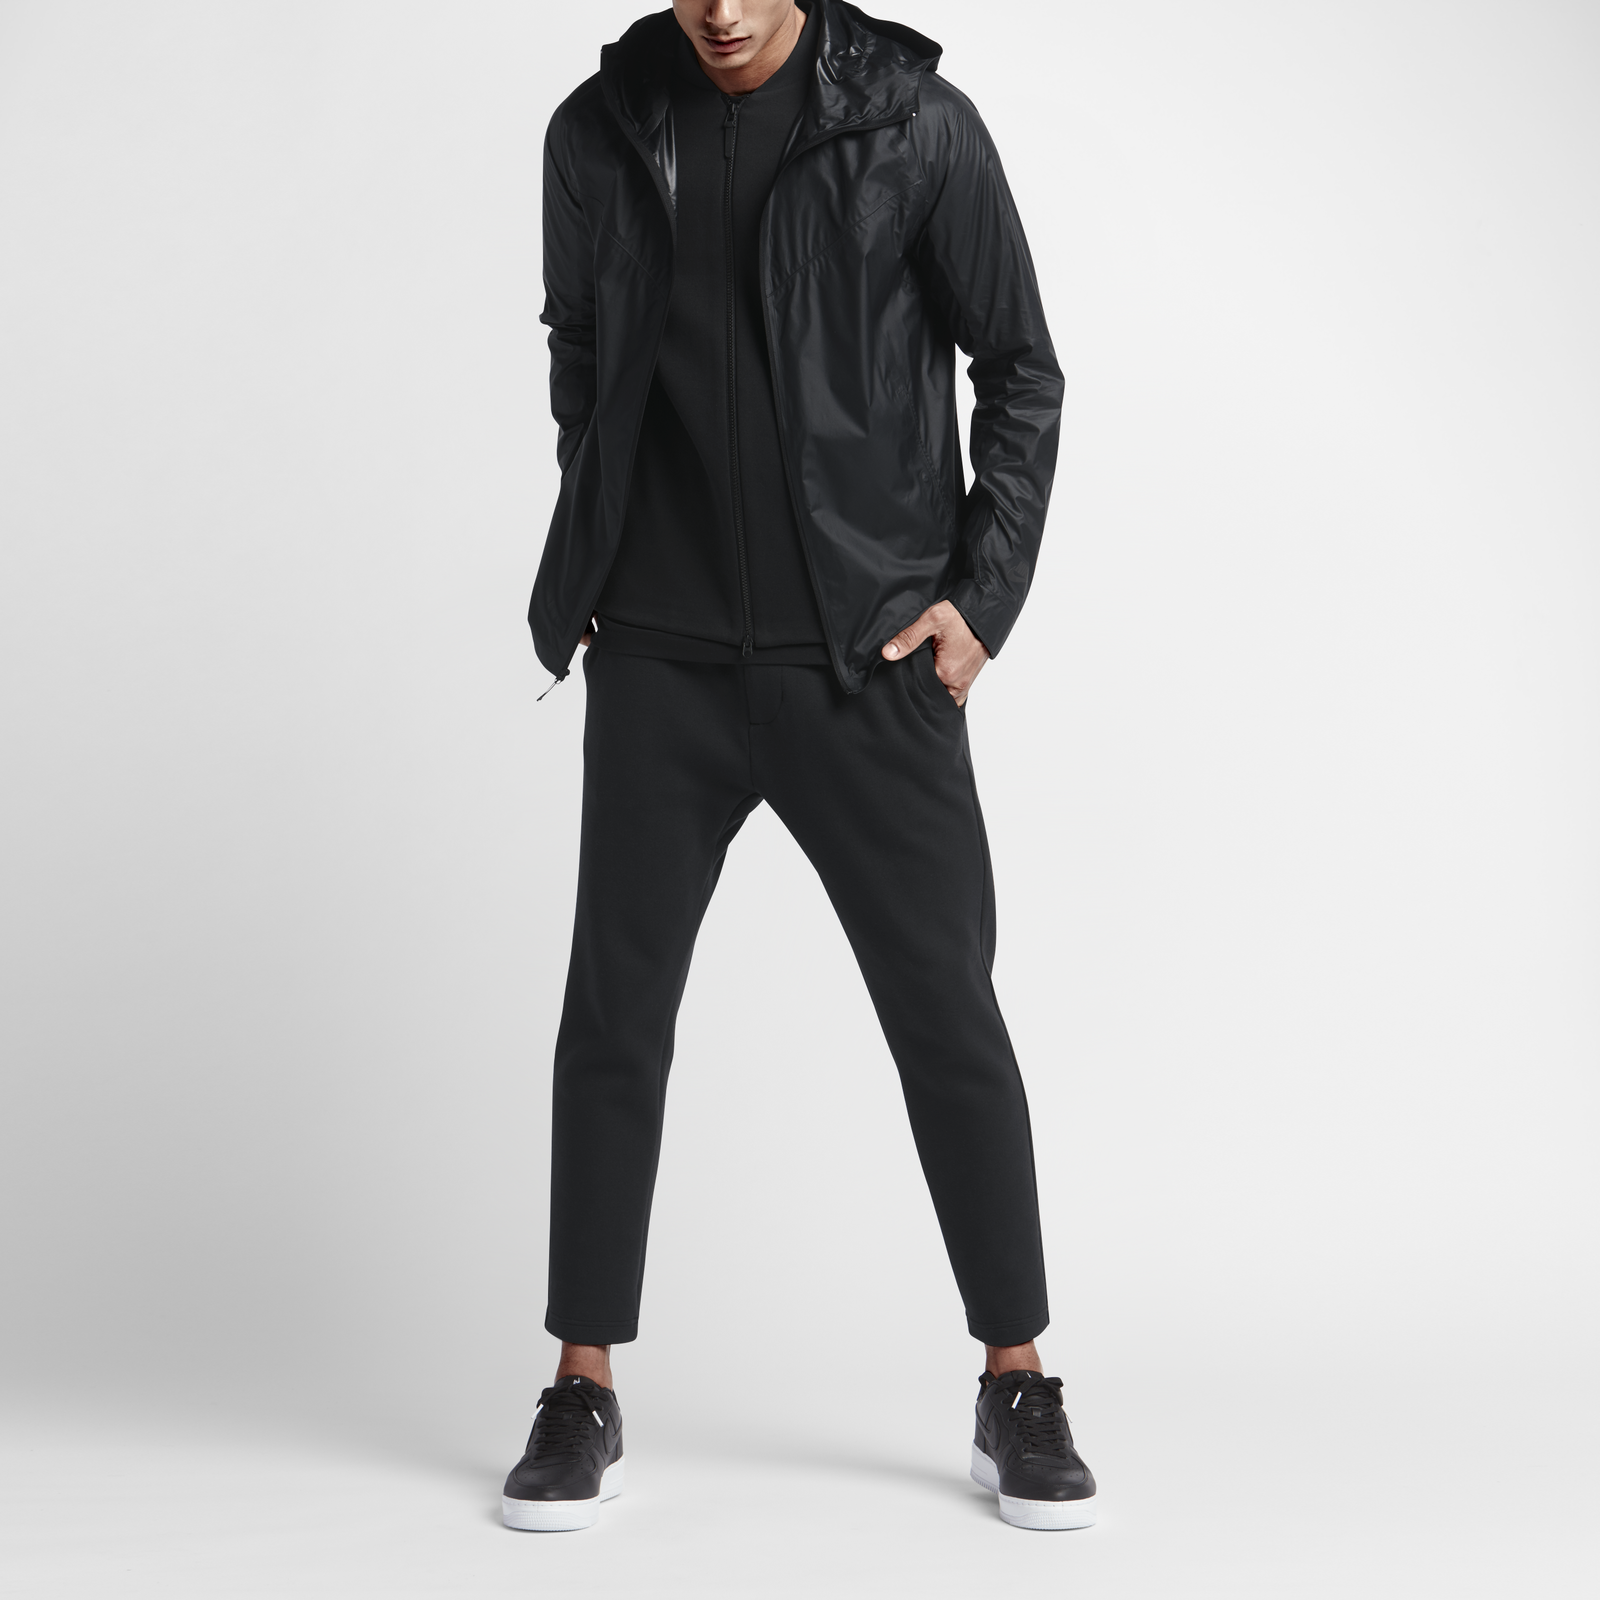 NikeLab_Transform_Jacket_mens_1_native_1600